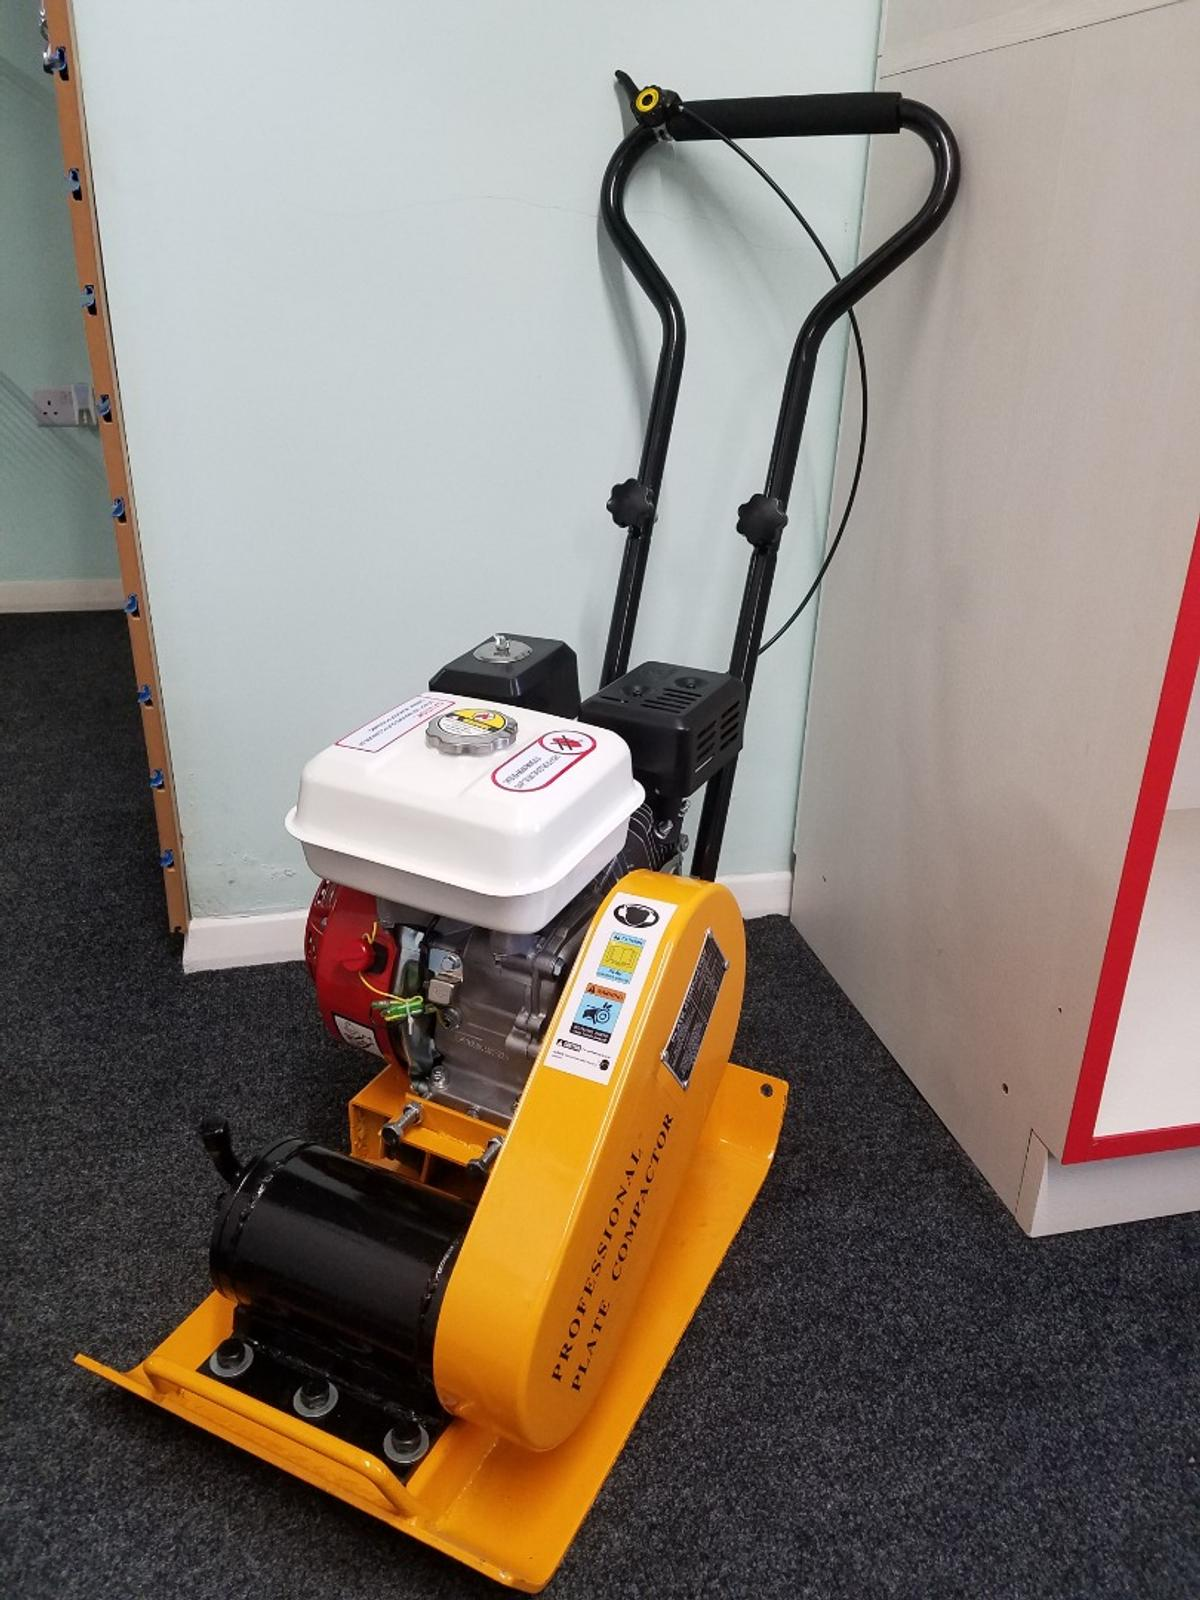 Professional plate compactor NEW in Tw3 3ah Hounslow for